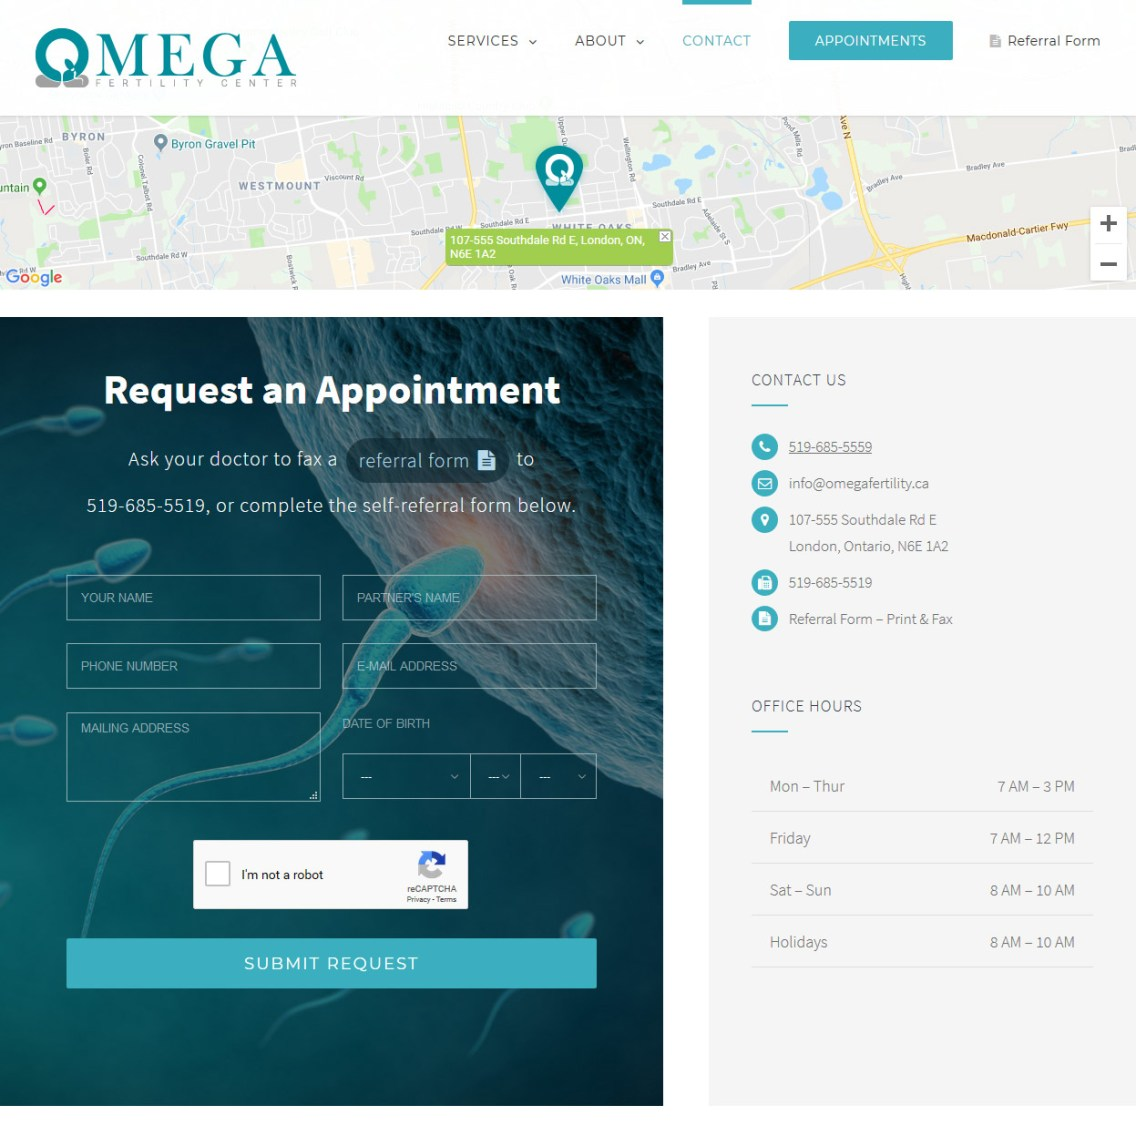 OMEGA Fertility Center Contact Referral Page